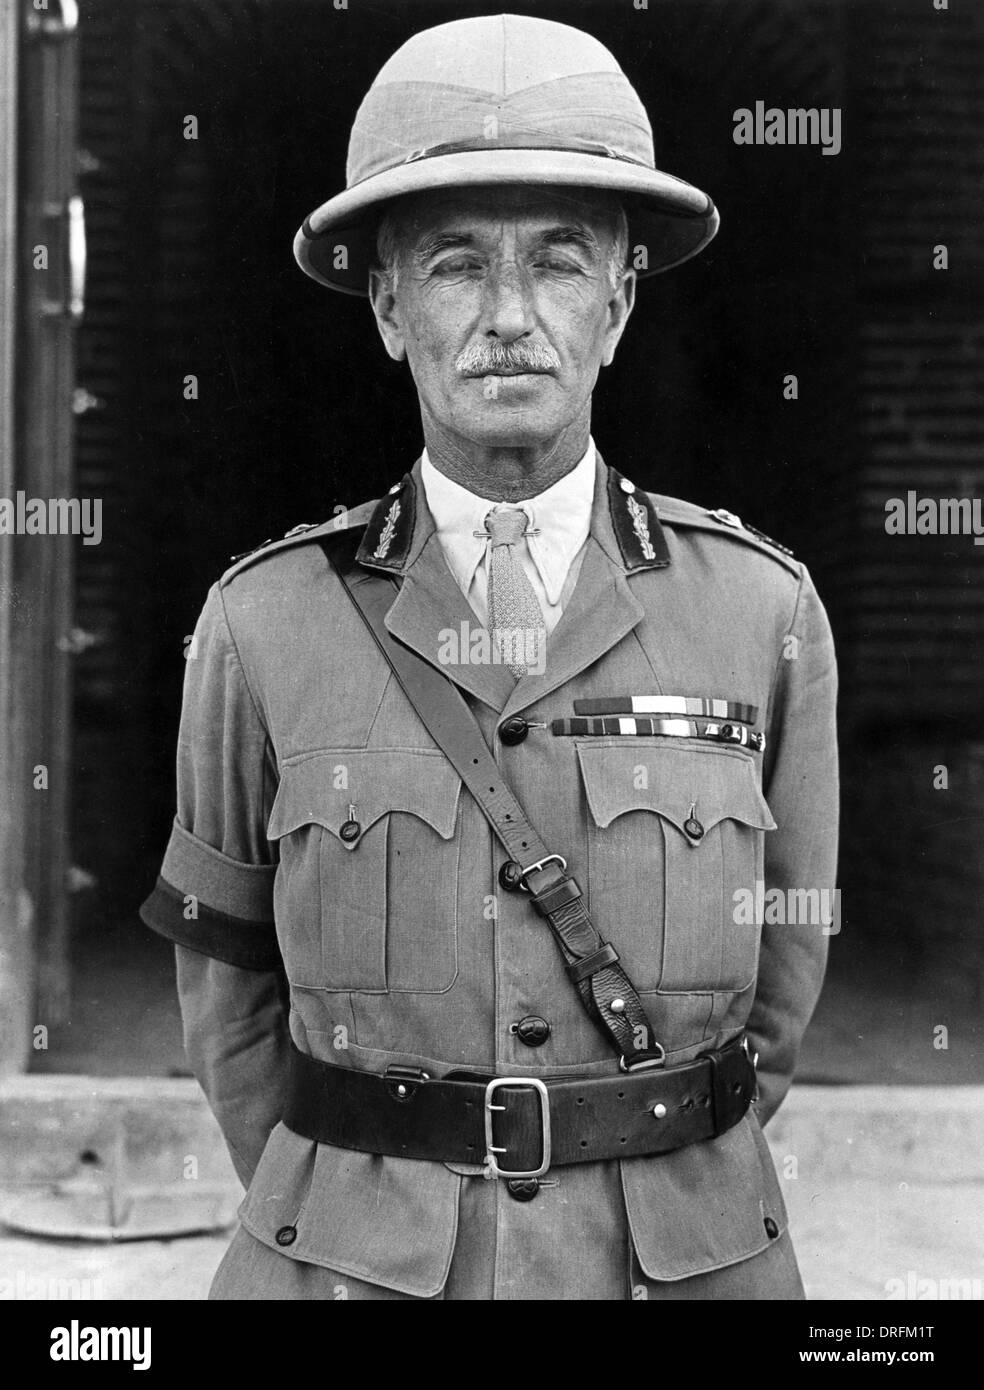 General Sir W R Marshall, British army officer, WW1 - Stock Image